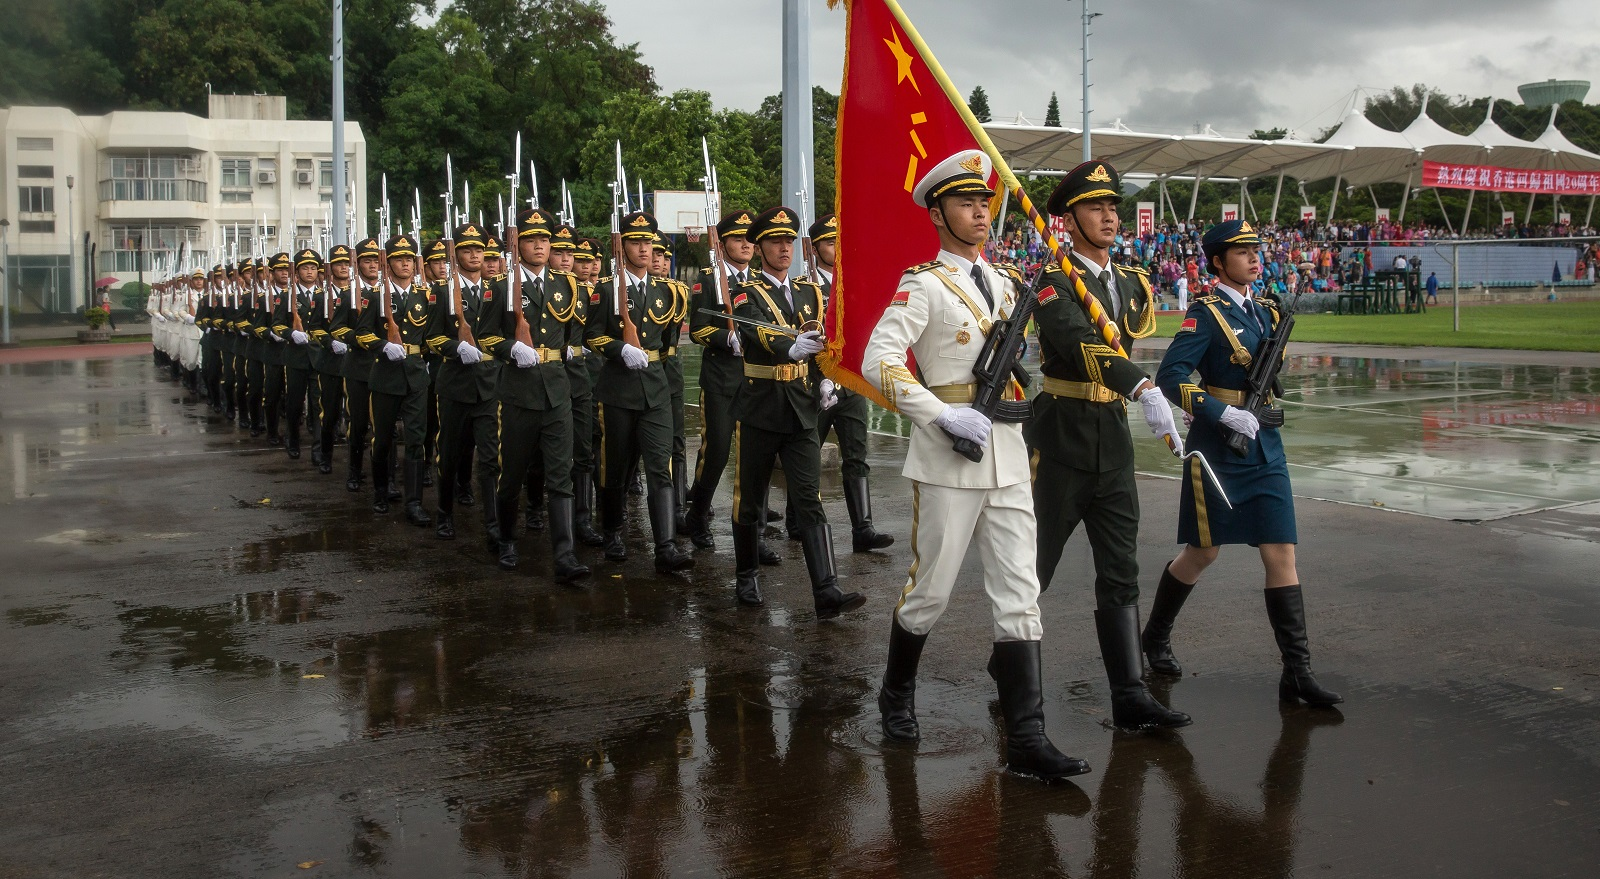 Members of the People's Liberation Army at an open day at the Ngong Suen Chau Barracks in Hong Kong, China, on 8 July. (Photo: Billy Kwok/Getty)